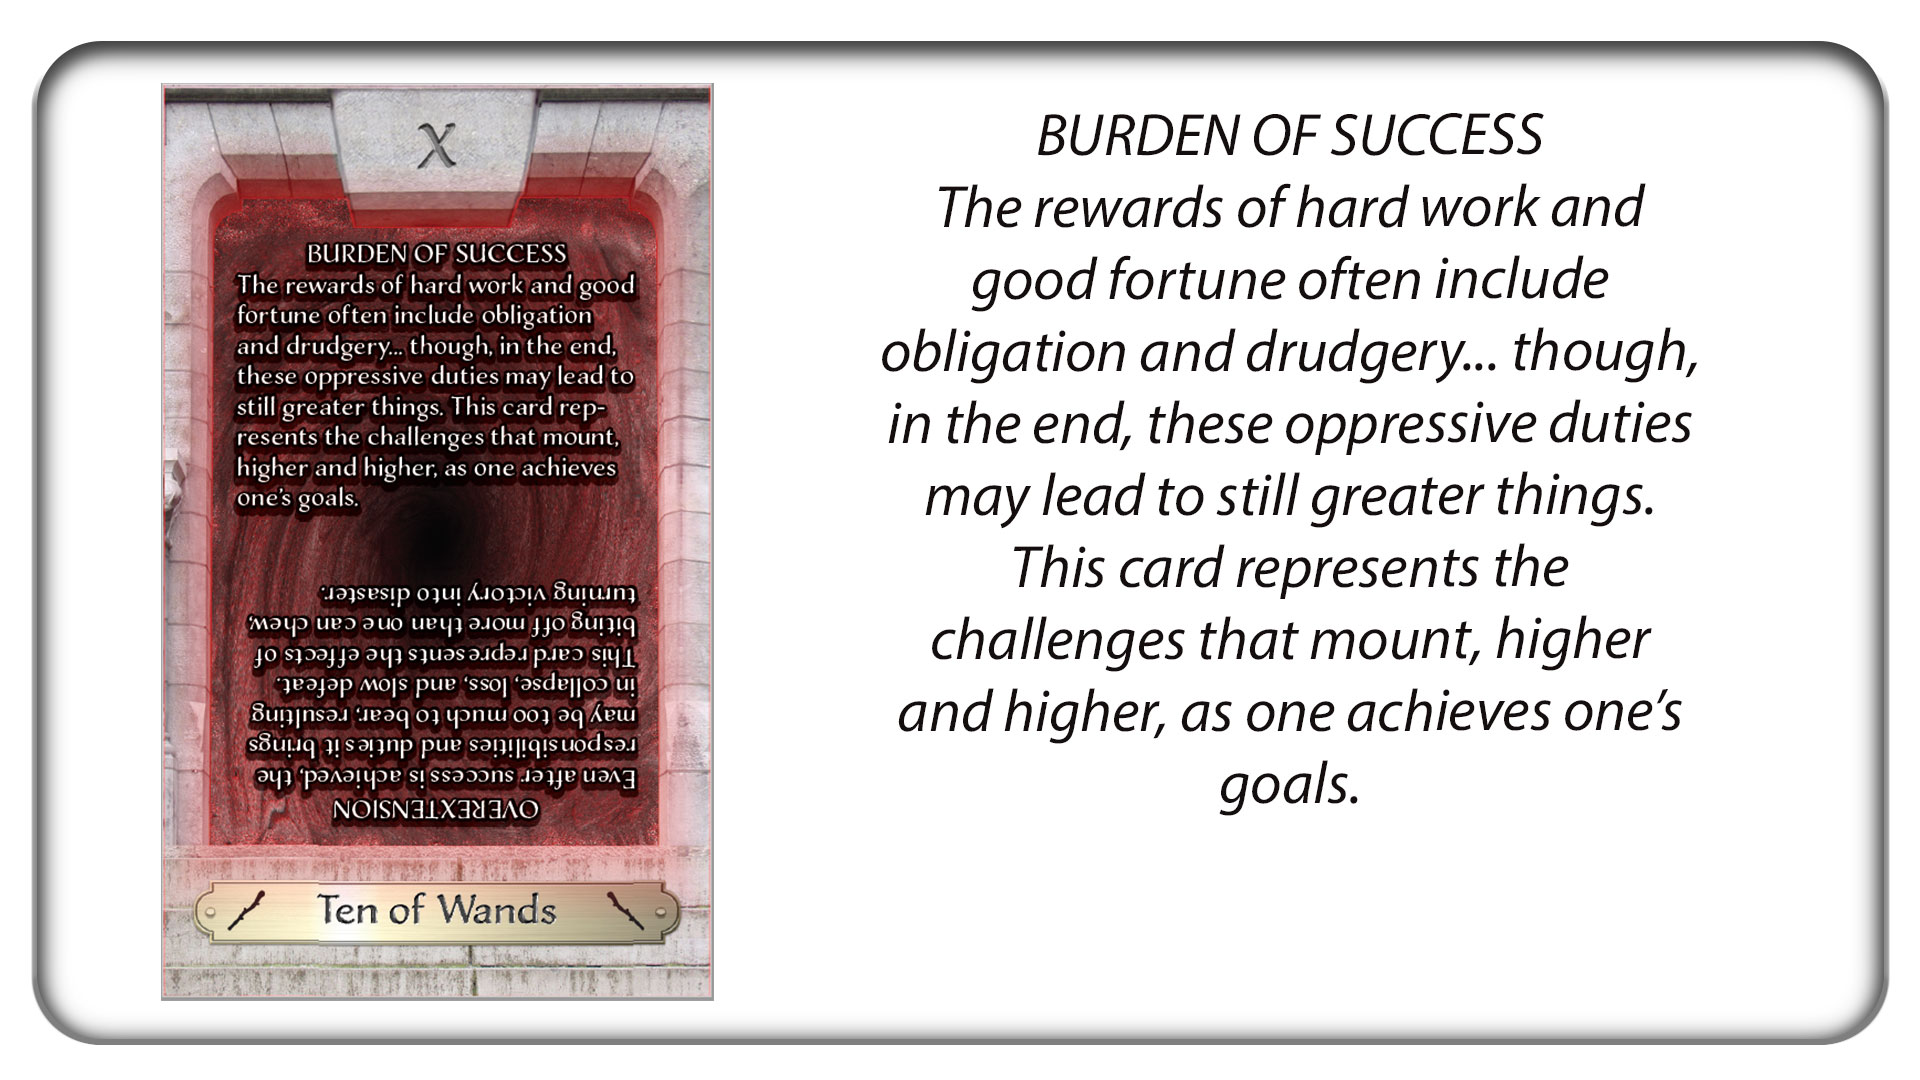 The Ten of Wands: Burden of Success